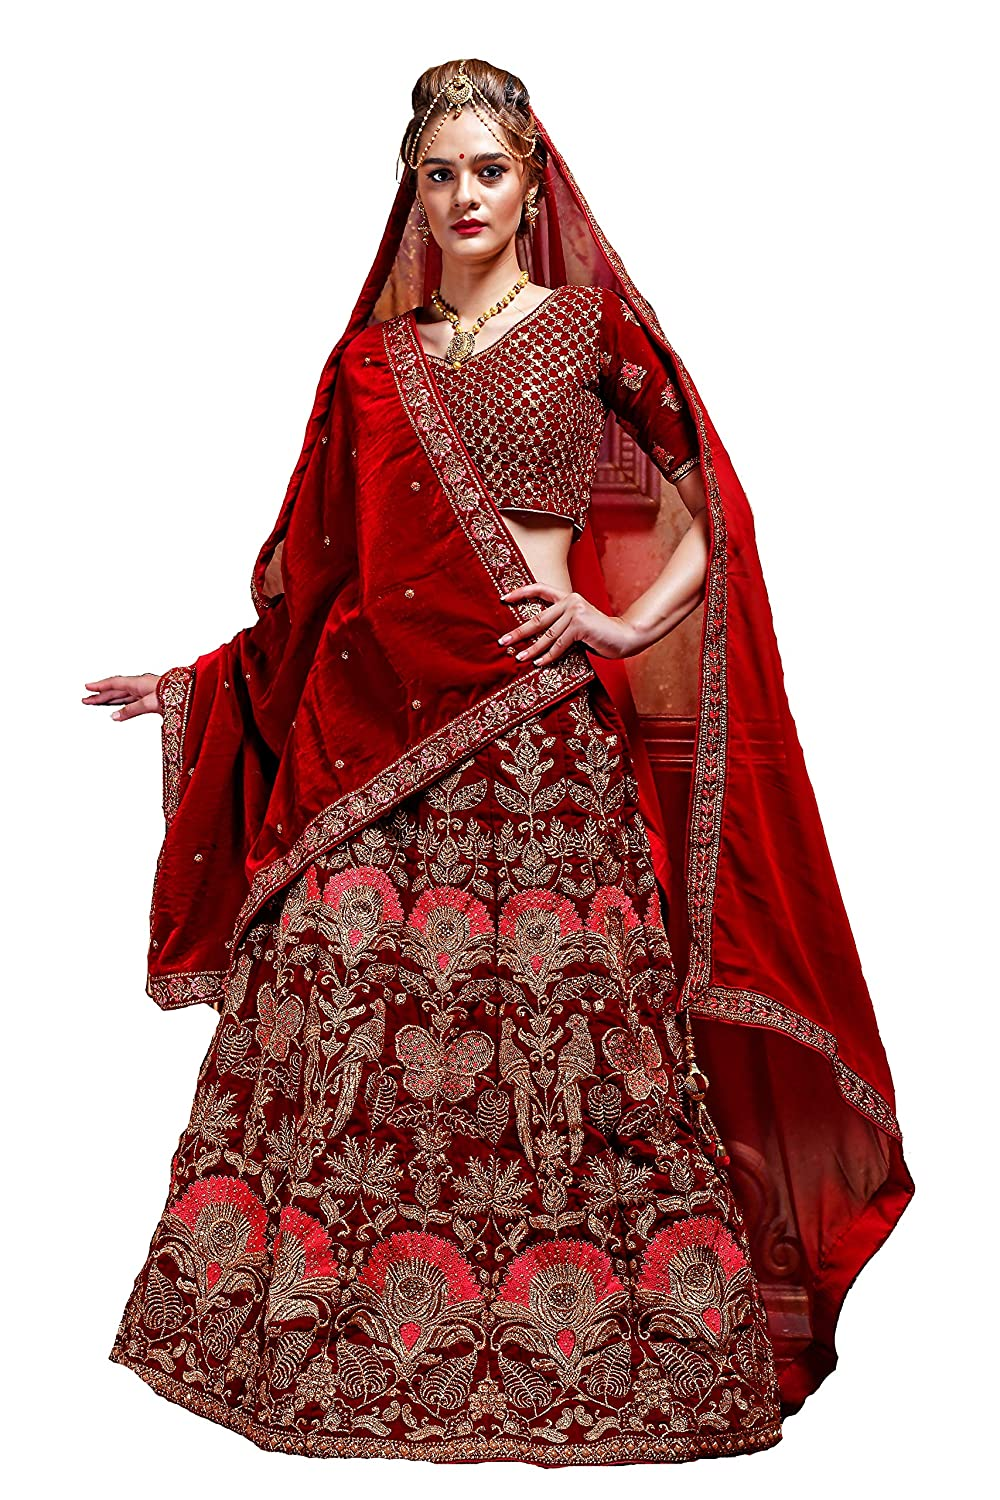 12ee18c9f RAMDEV EMPERIO Bridal Collection Velvet Lehenga choli for girls(Maroon,  1029, Free size): Amazon.in: Clothing & Accessories